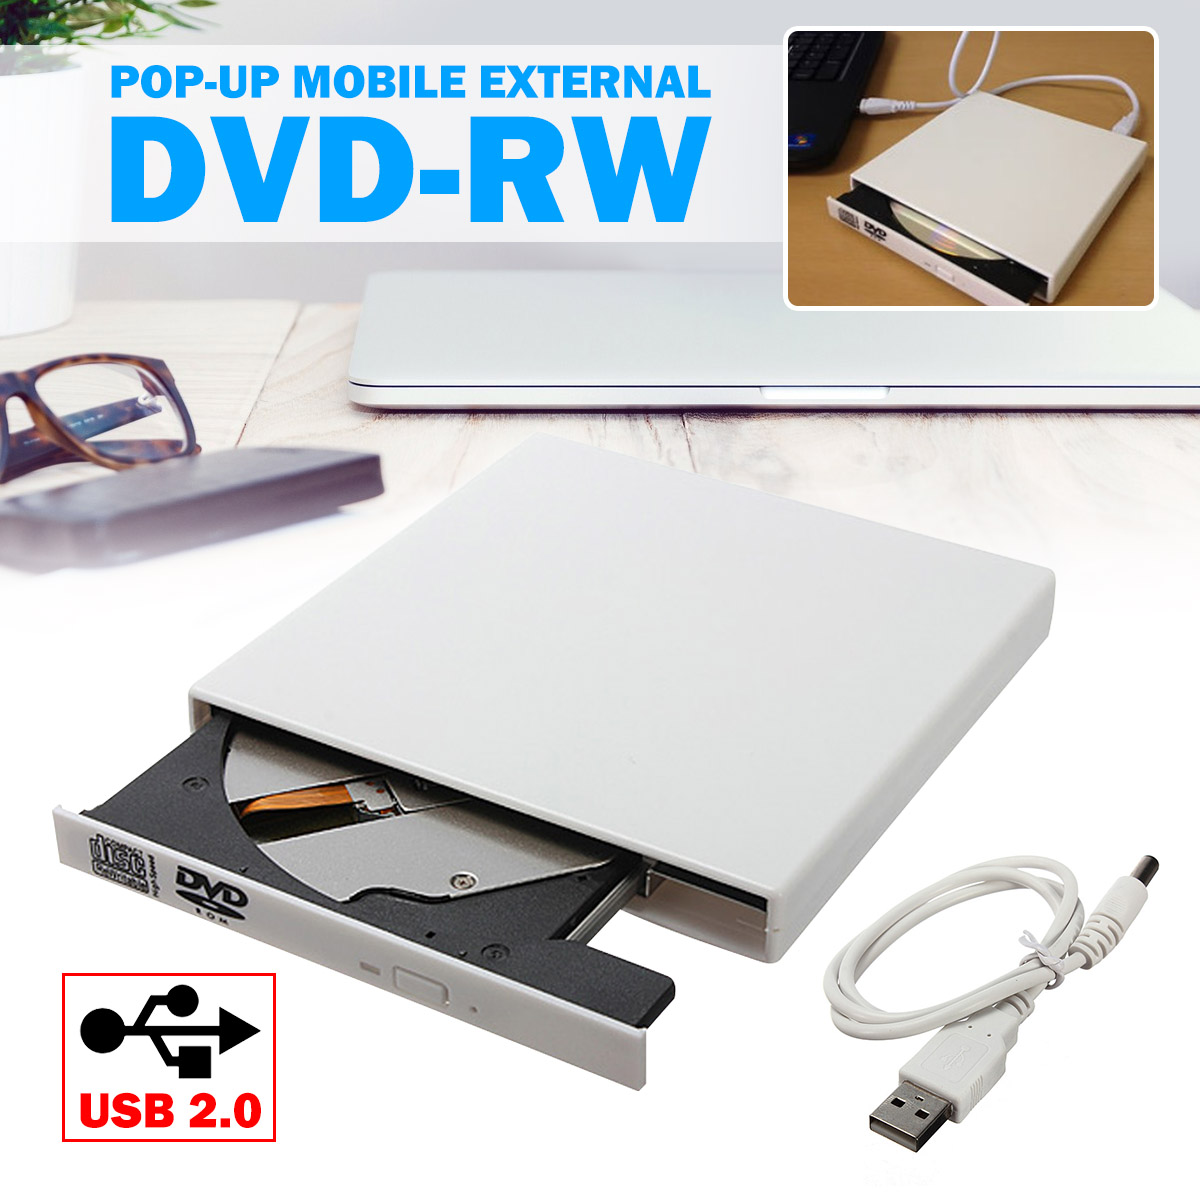 Fino Drive Óptico Externo USB 2.0 de Combinação DVD ROM DVD Player CD-Rw Writer Plug and Play Para macbook Laptop PC Desktop